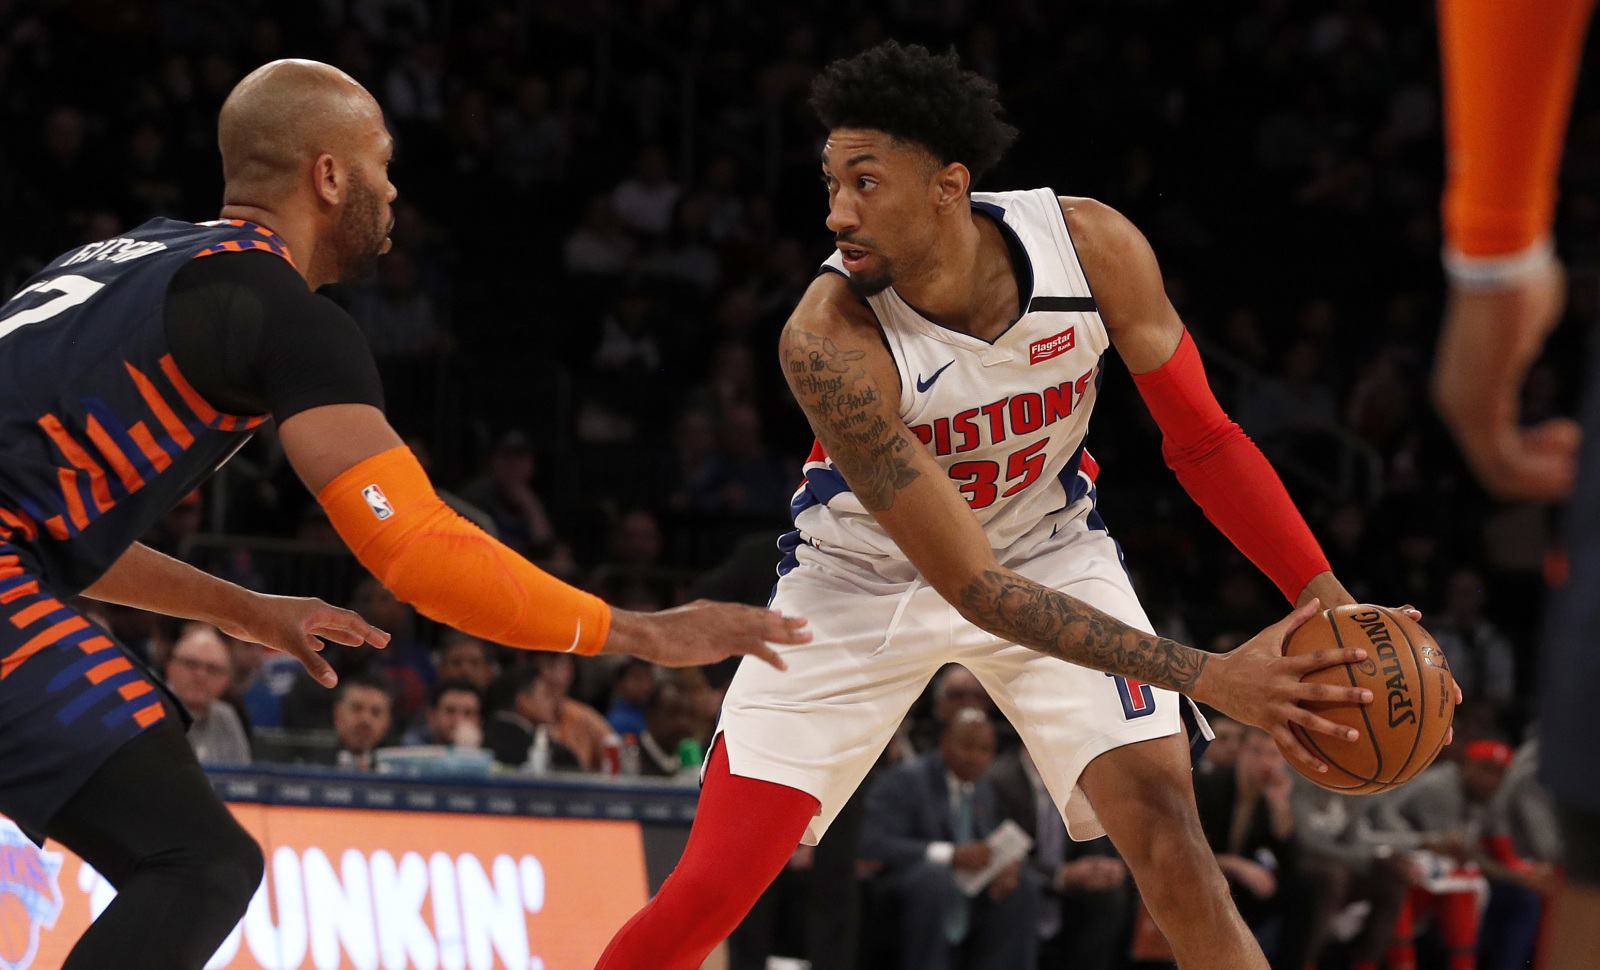 Knicks Rumors: Pros and cons of pursuing Christian Wood in free agency